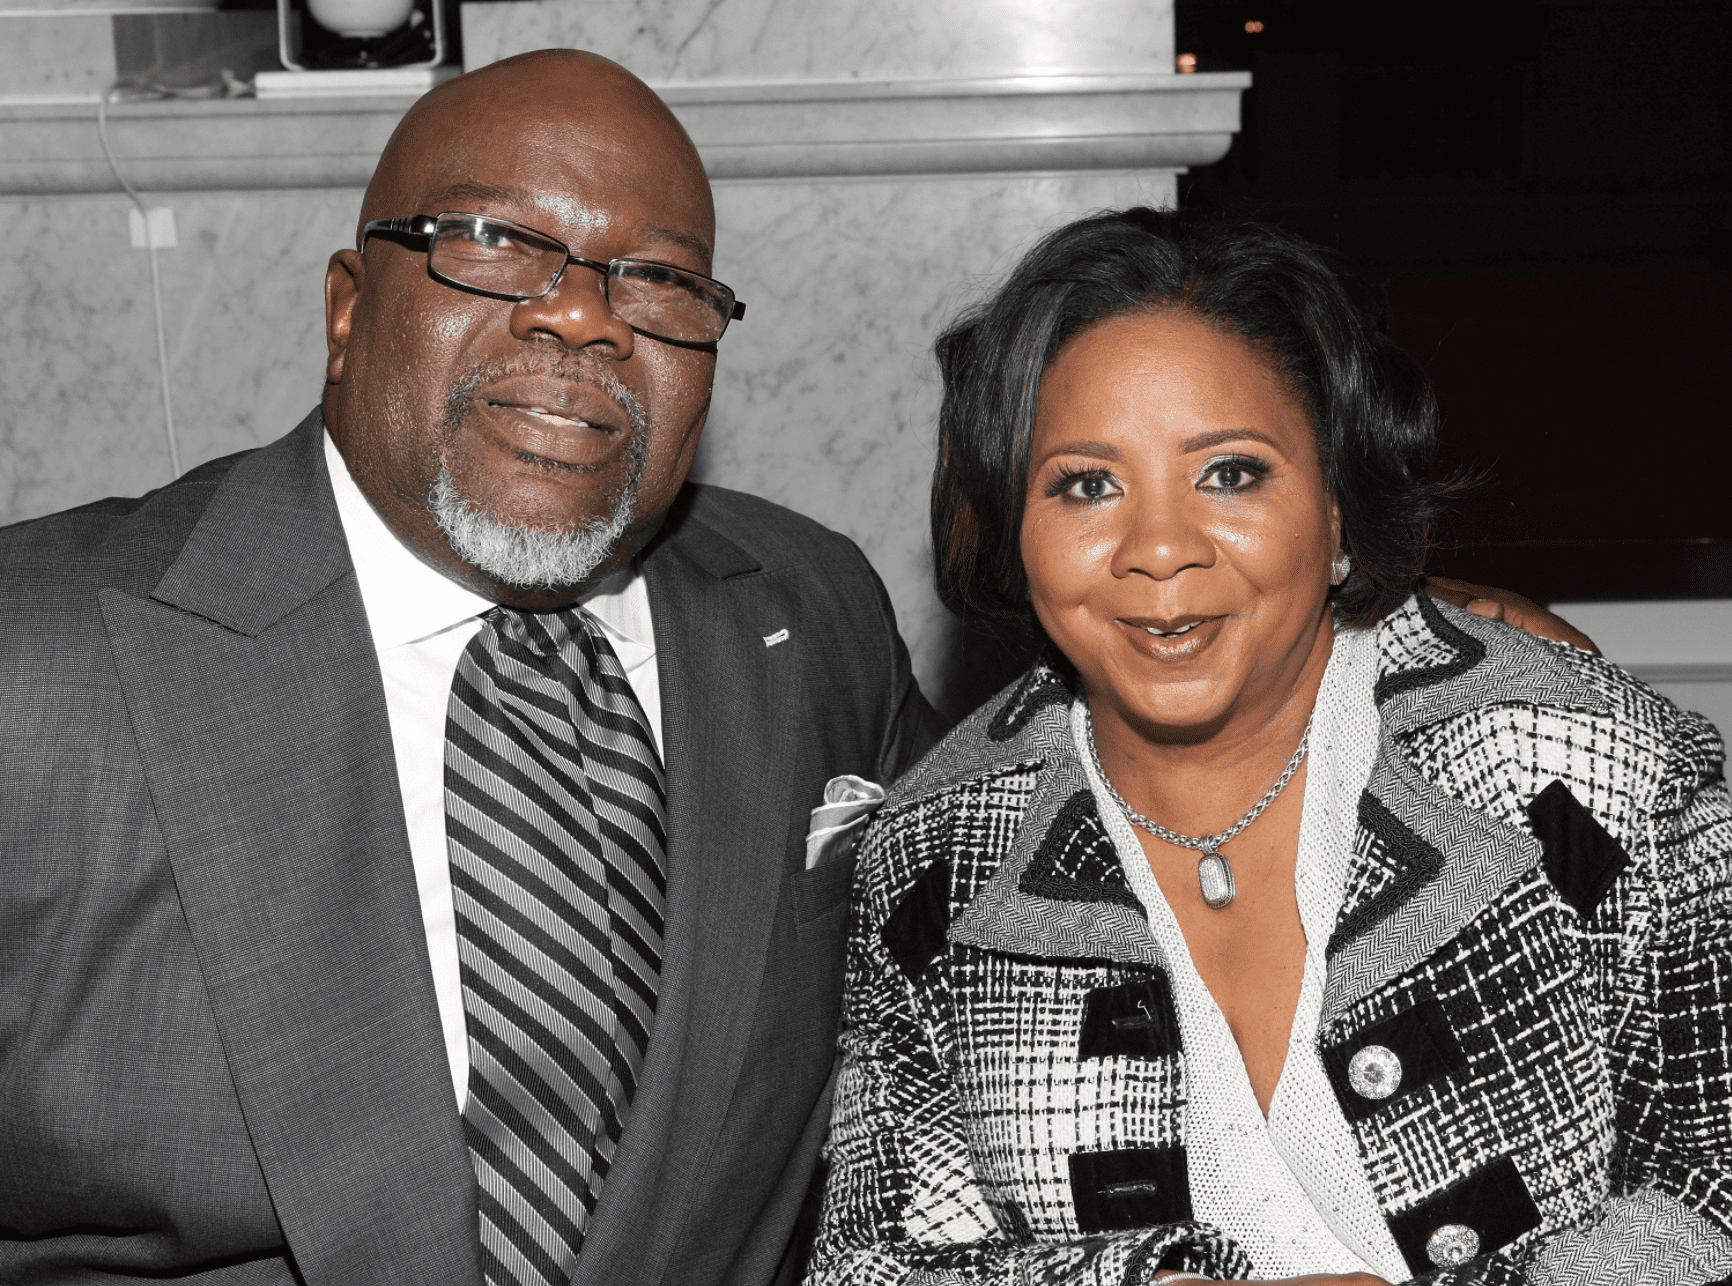 Bishop T. D. Jakes and his wife Serita Jakes at the BET Honors 2013 in Washington, DC. | Source: Getty Images